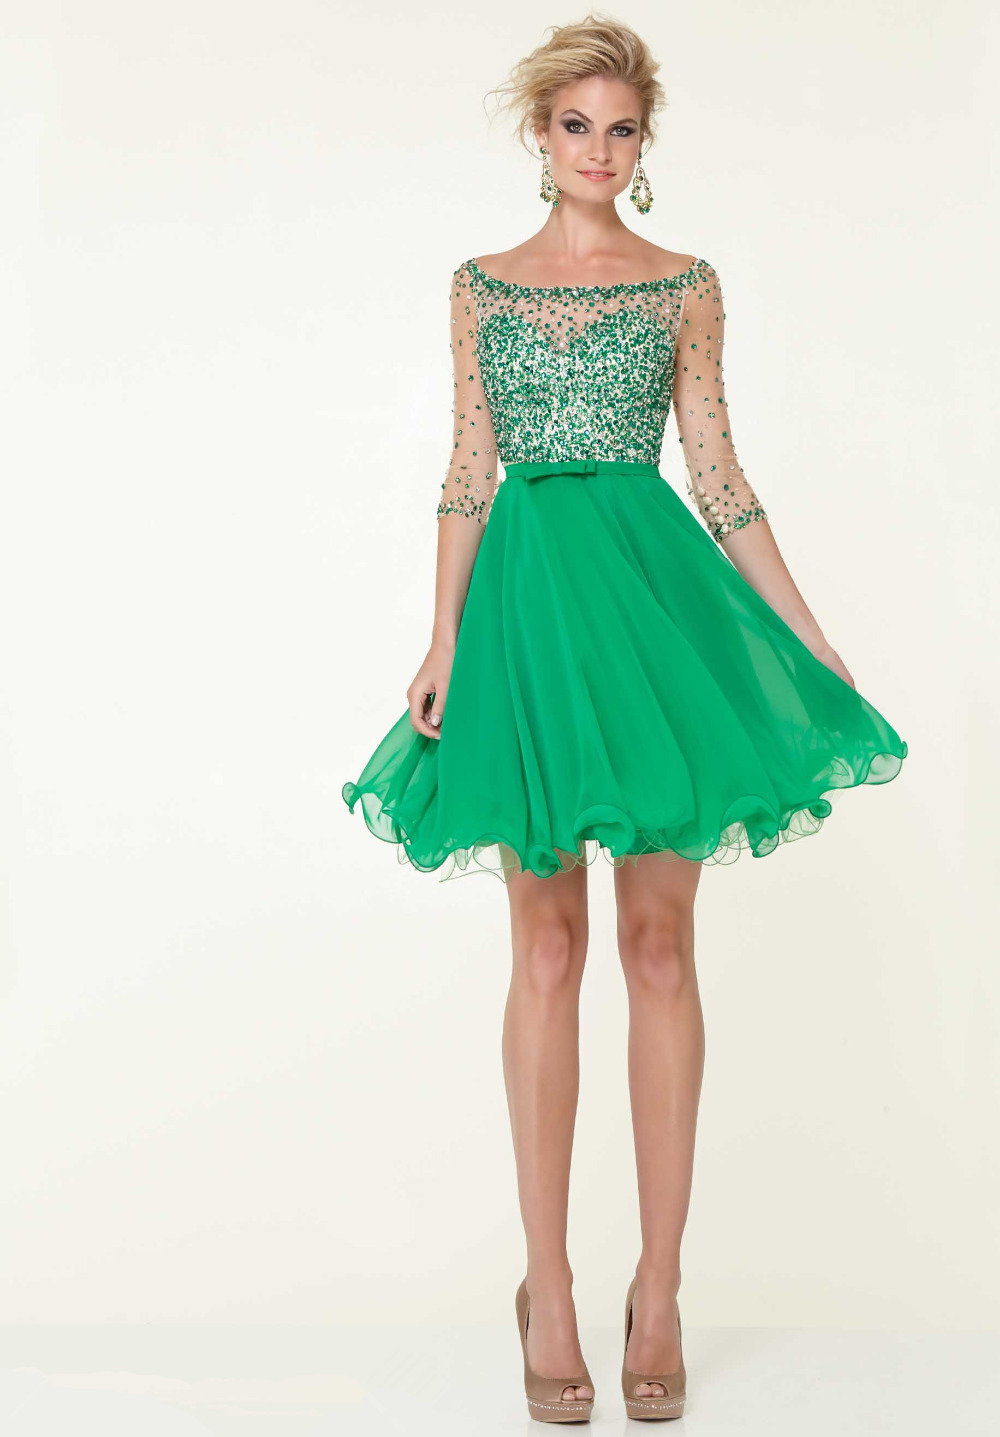 Green Sequin 8th Grade Graduation Dresses 2015 Short Home ...